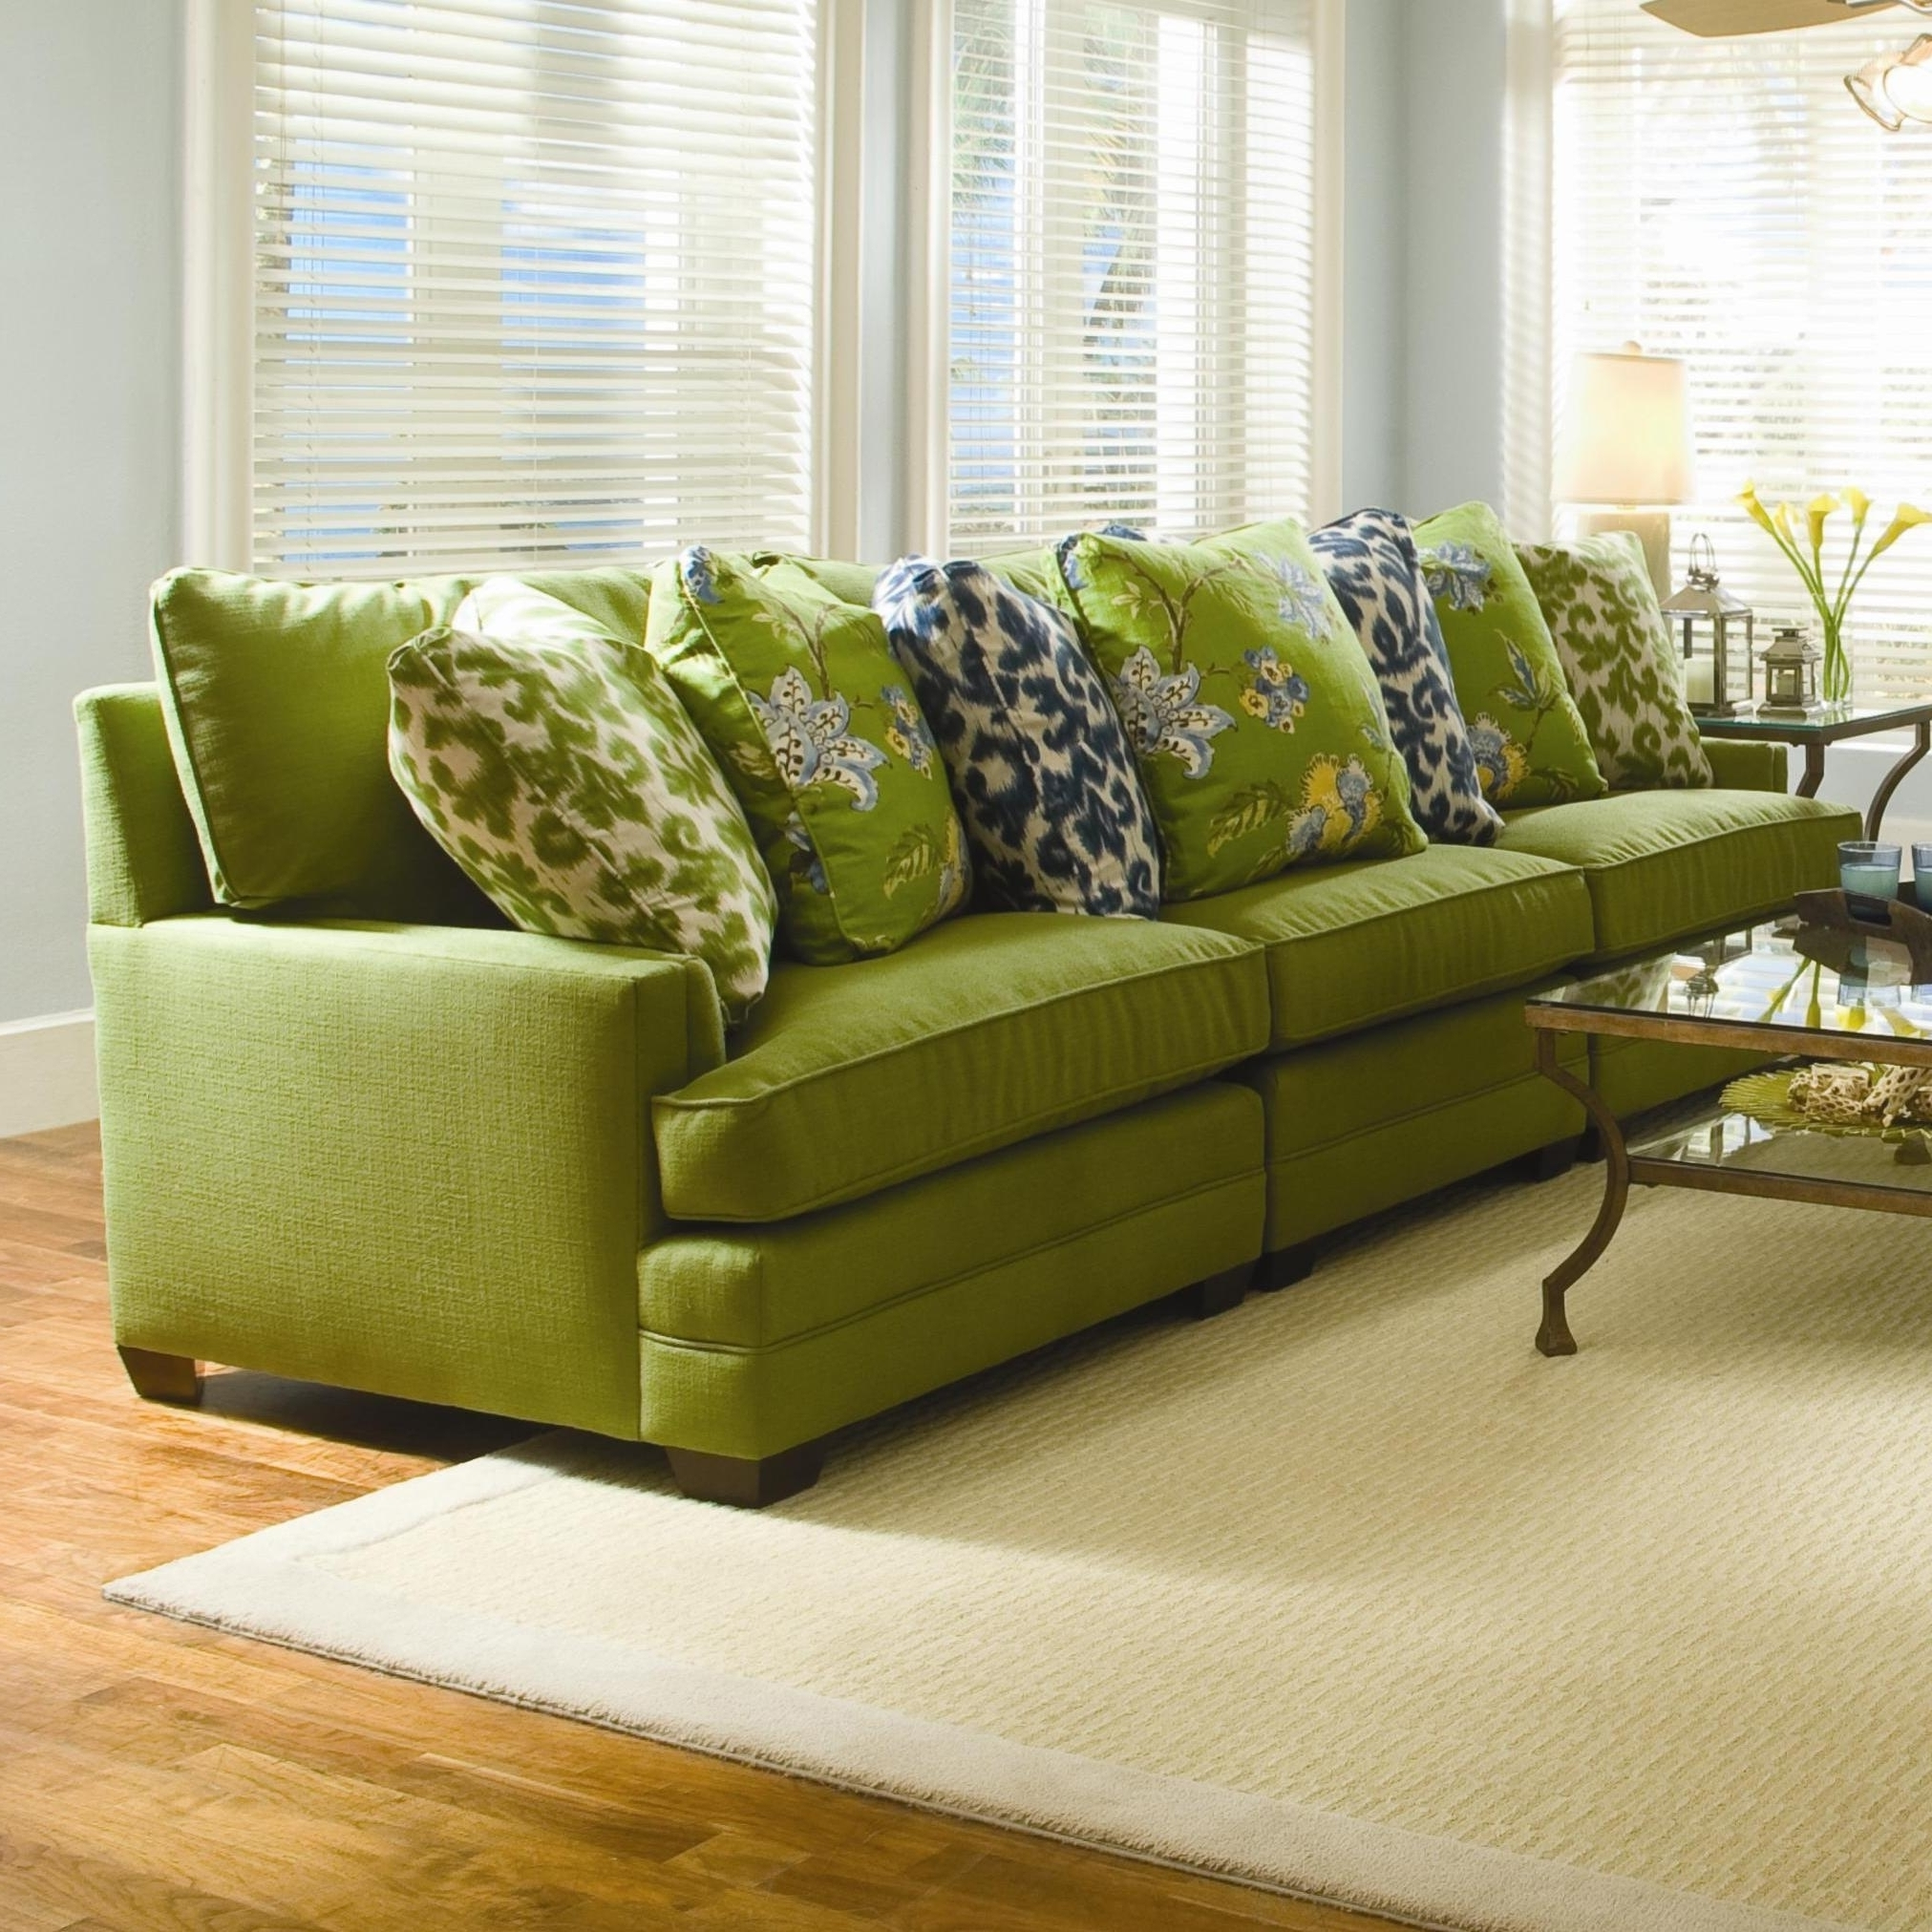 Favorite Wide Seat Sectional Sofas For Simple Wide Seat Sectional Sofas Within 20 Photos Wide Seat (View 9 of 15)